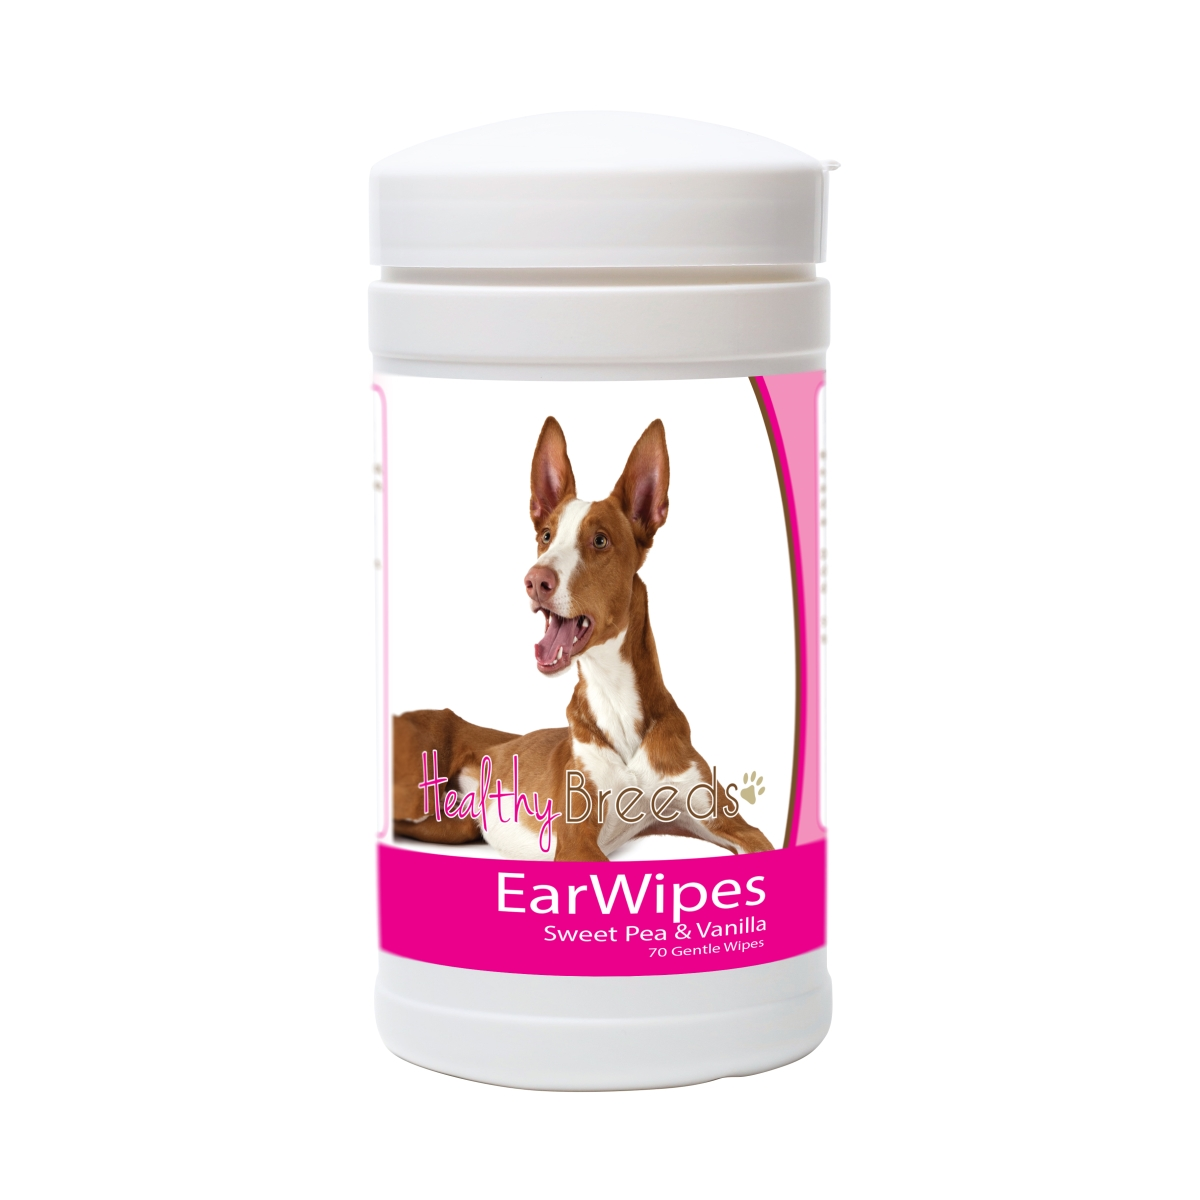 Healthy Breeds 840235174455 Ibizan Hound Ear Wipes - 70 Count